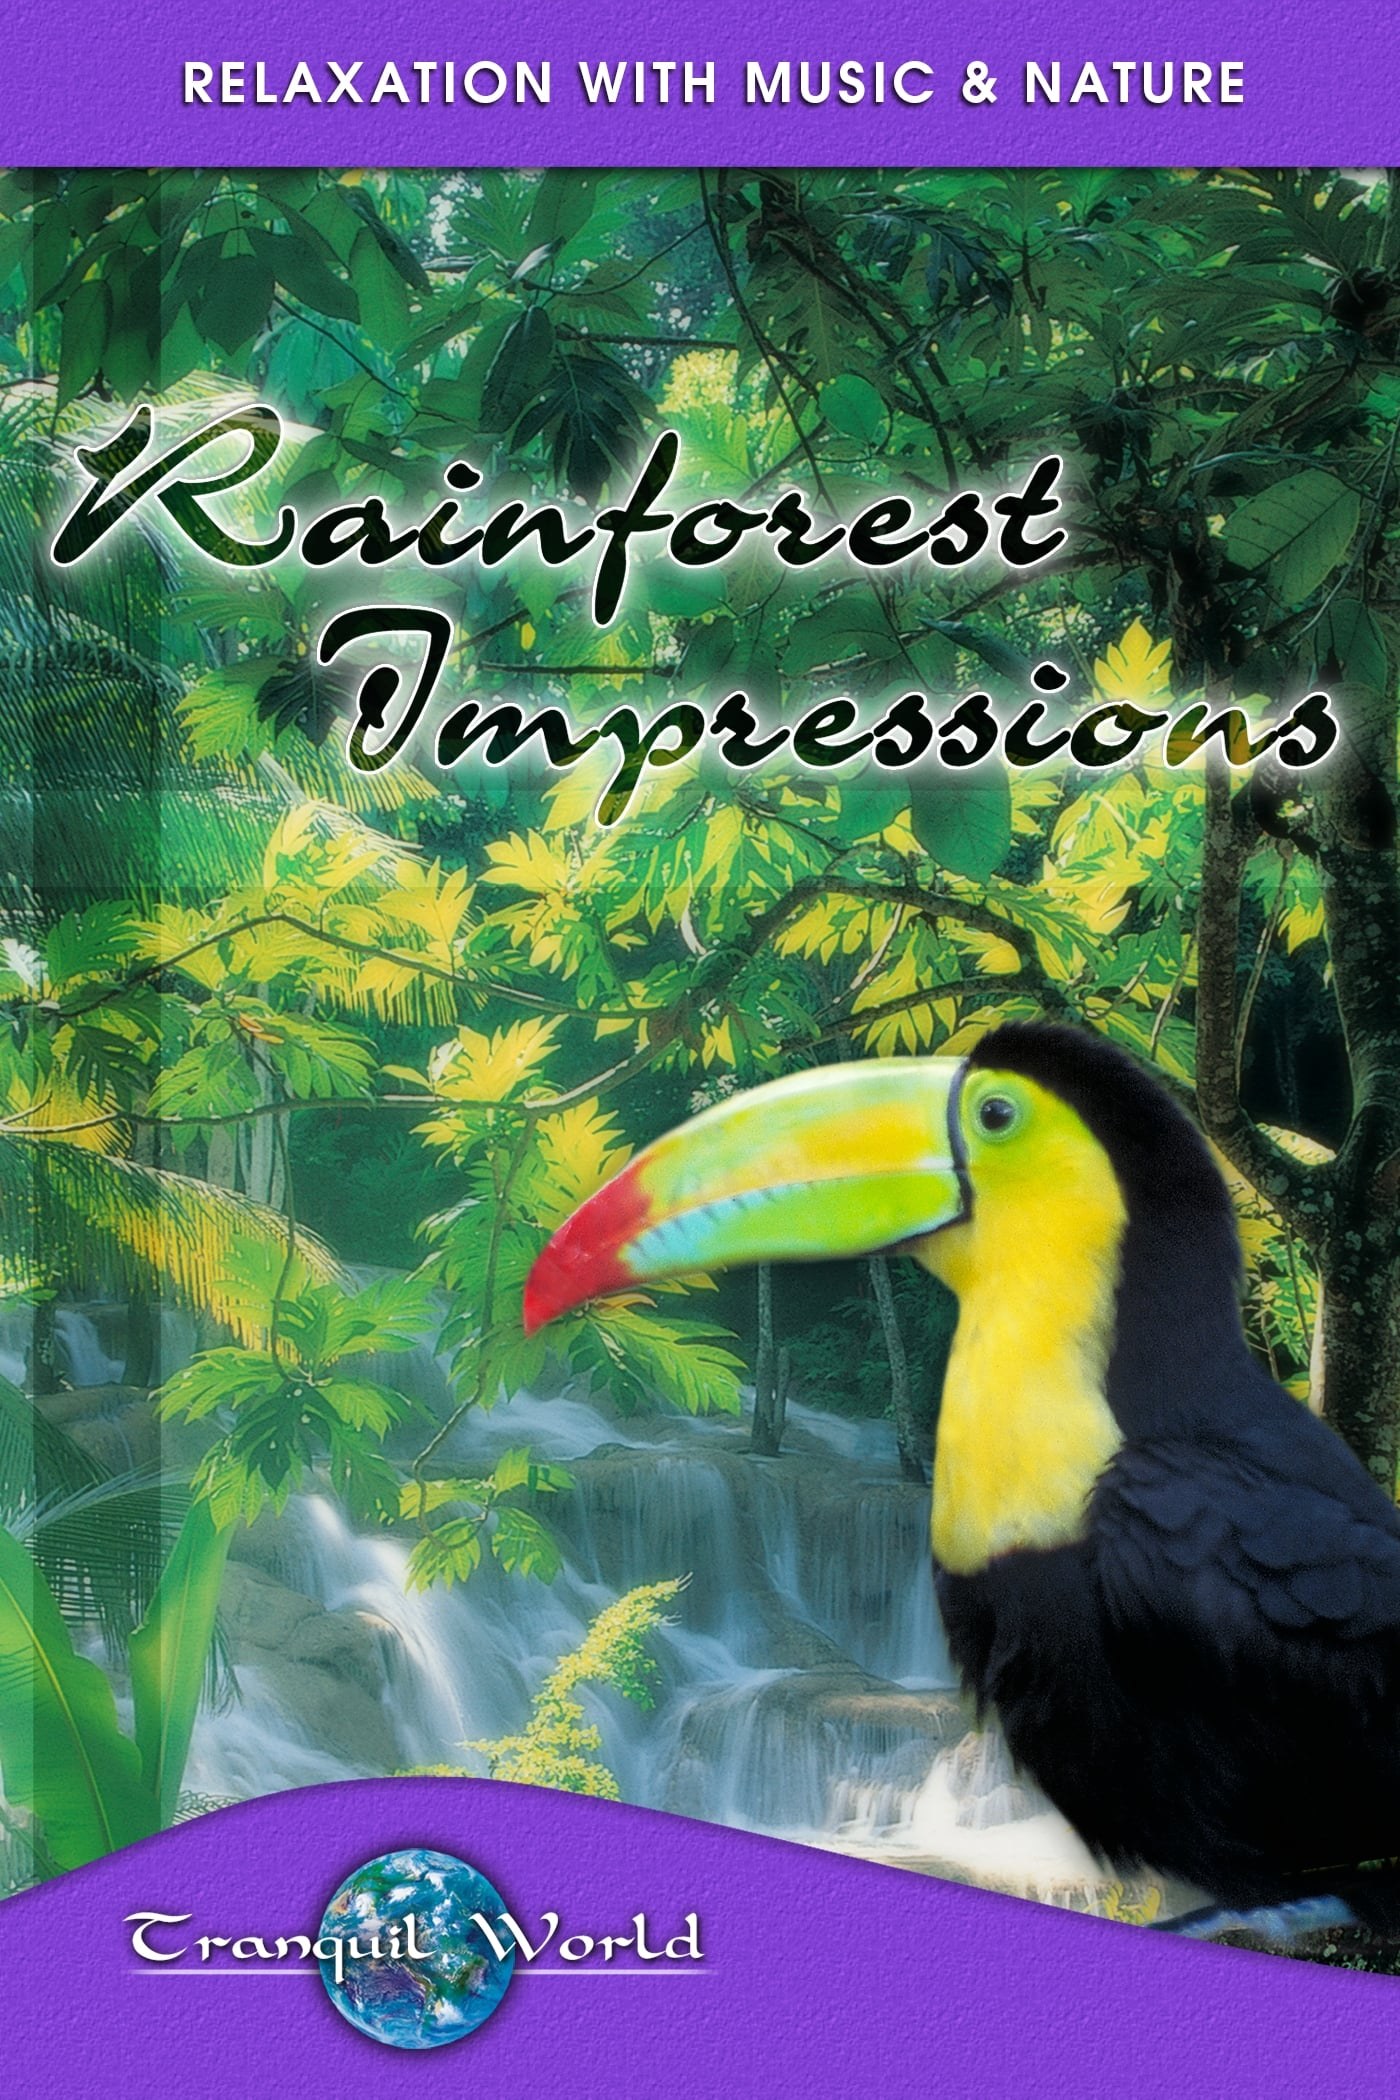 Rainforest Impressions: Tranquil World - Relaxation with Music & Nature on FREECABLE TV